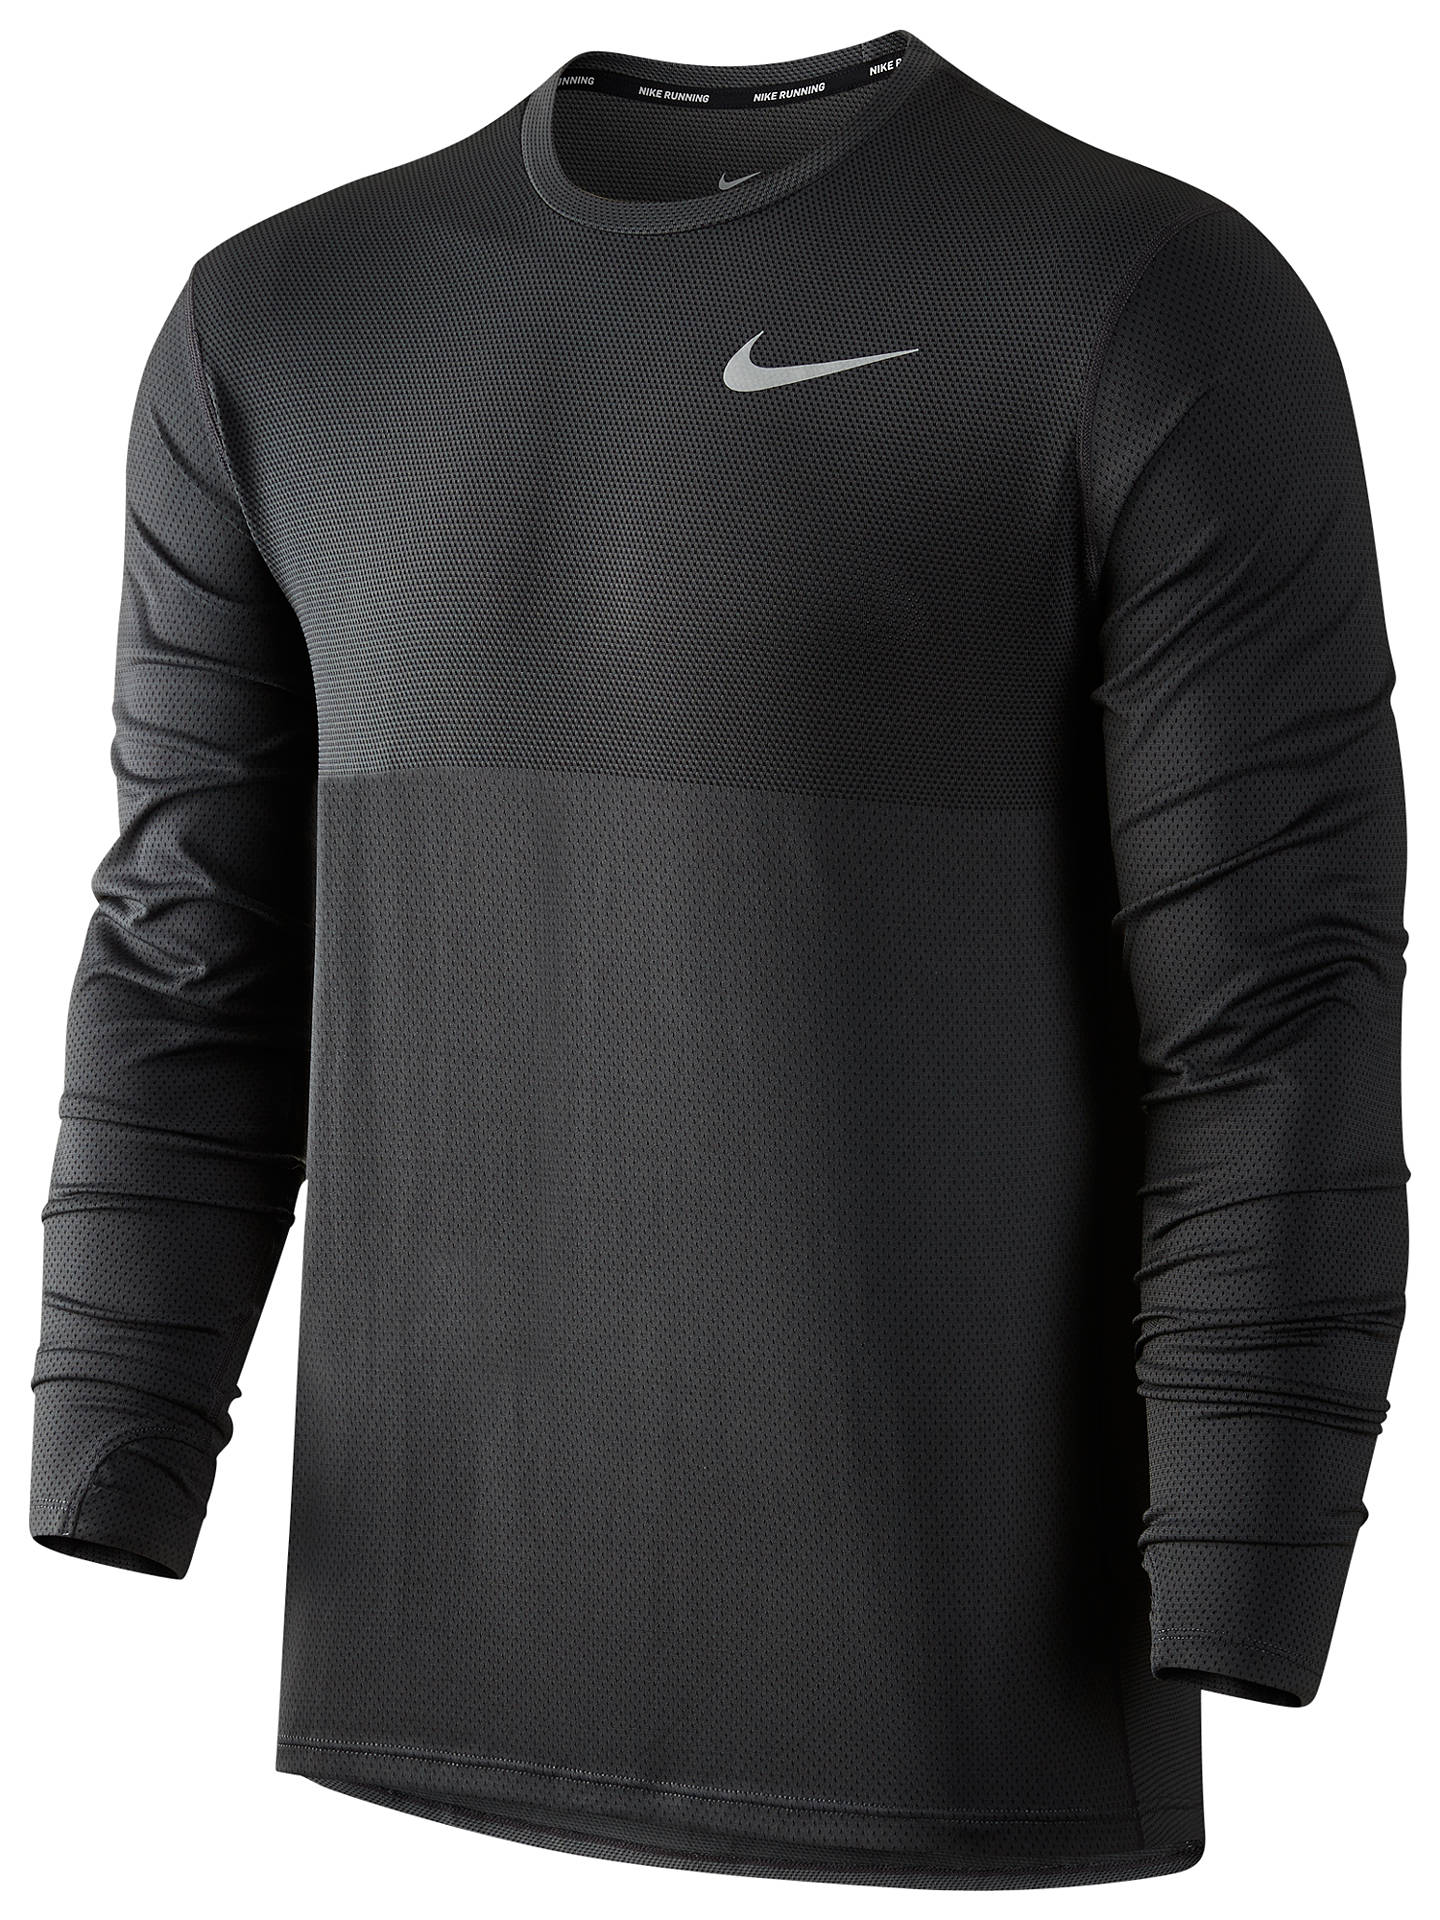 Nike Zonal Cooling Top And To Have A Long Life. Activewear